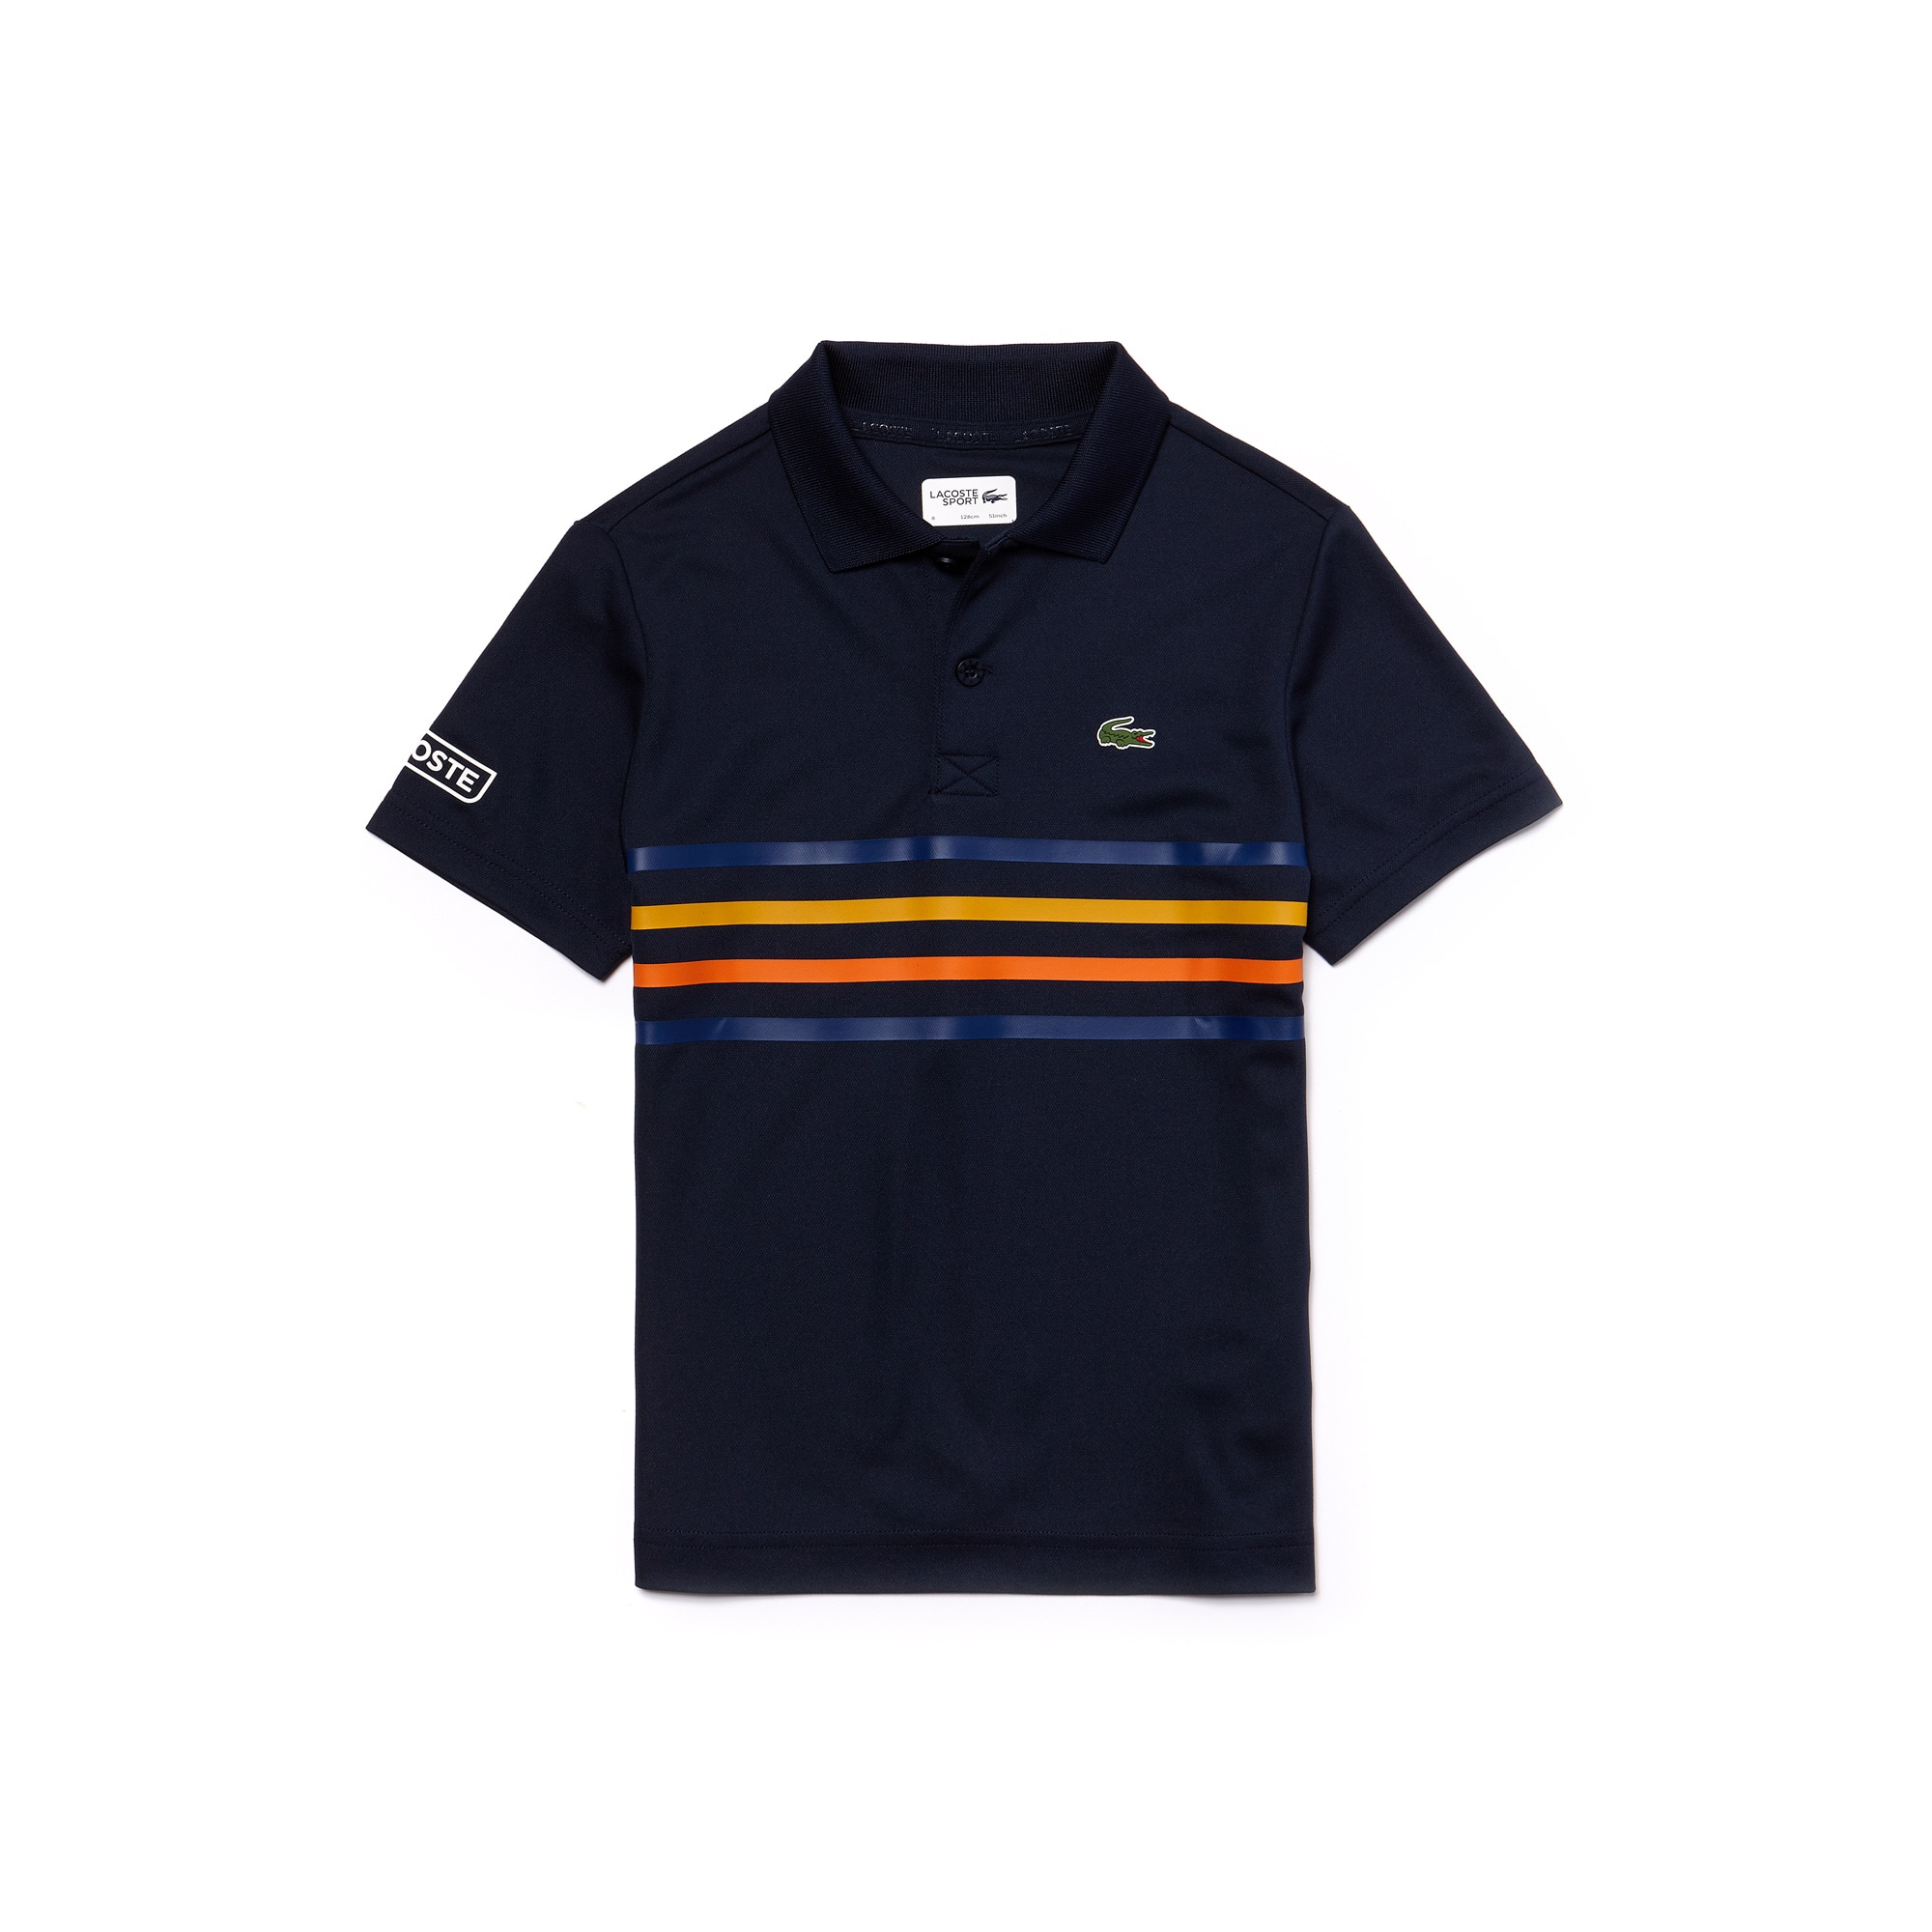 Boys' Lacoste SPORT Colored Bands Tech Piqué Tennis Polo Shirt